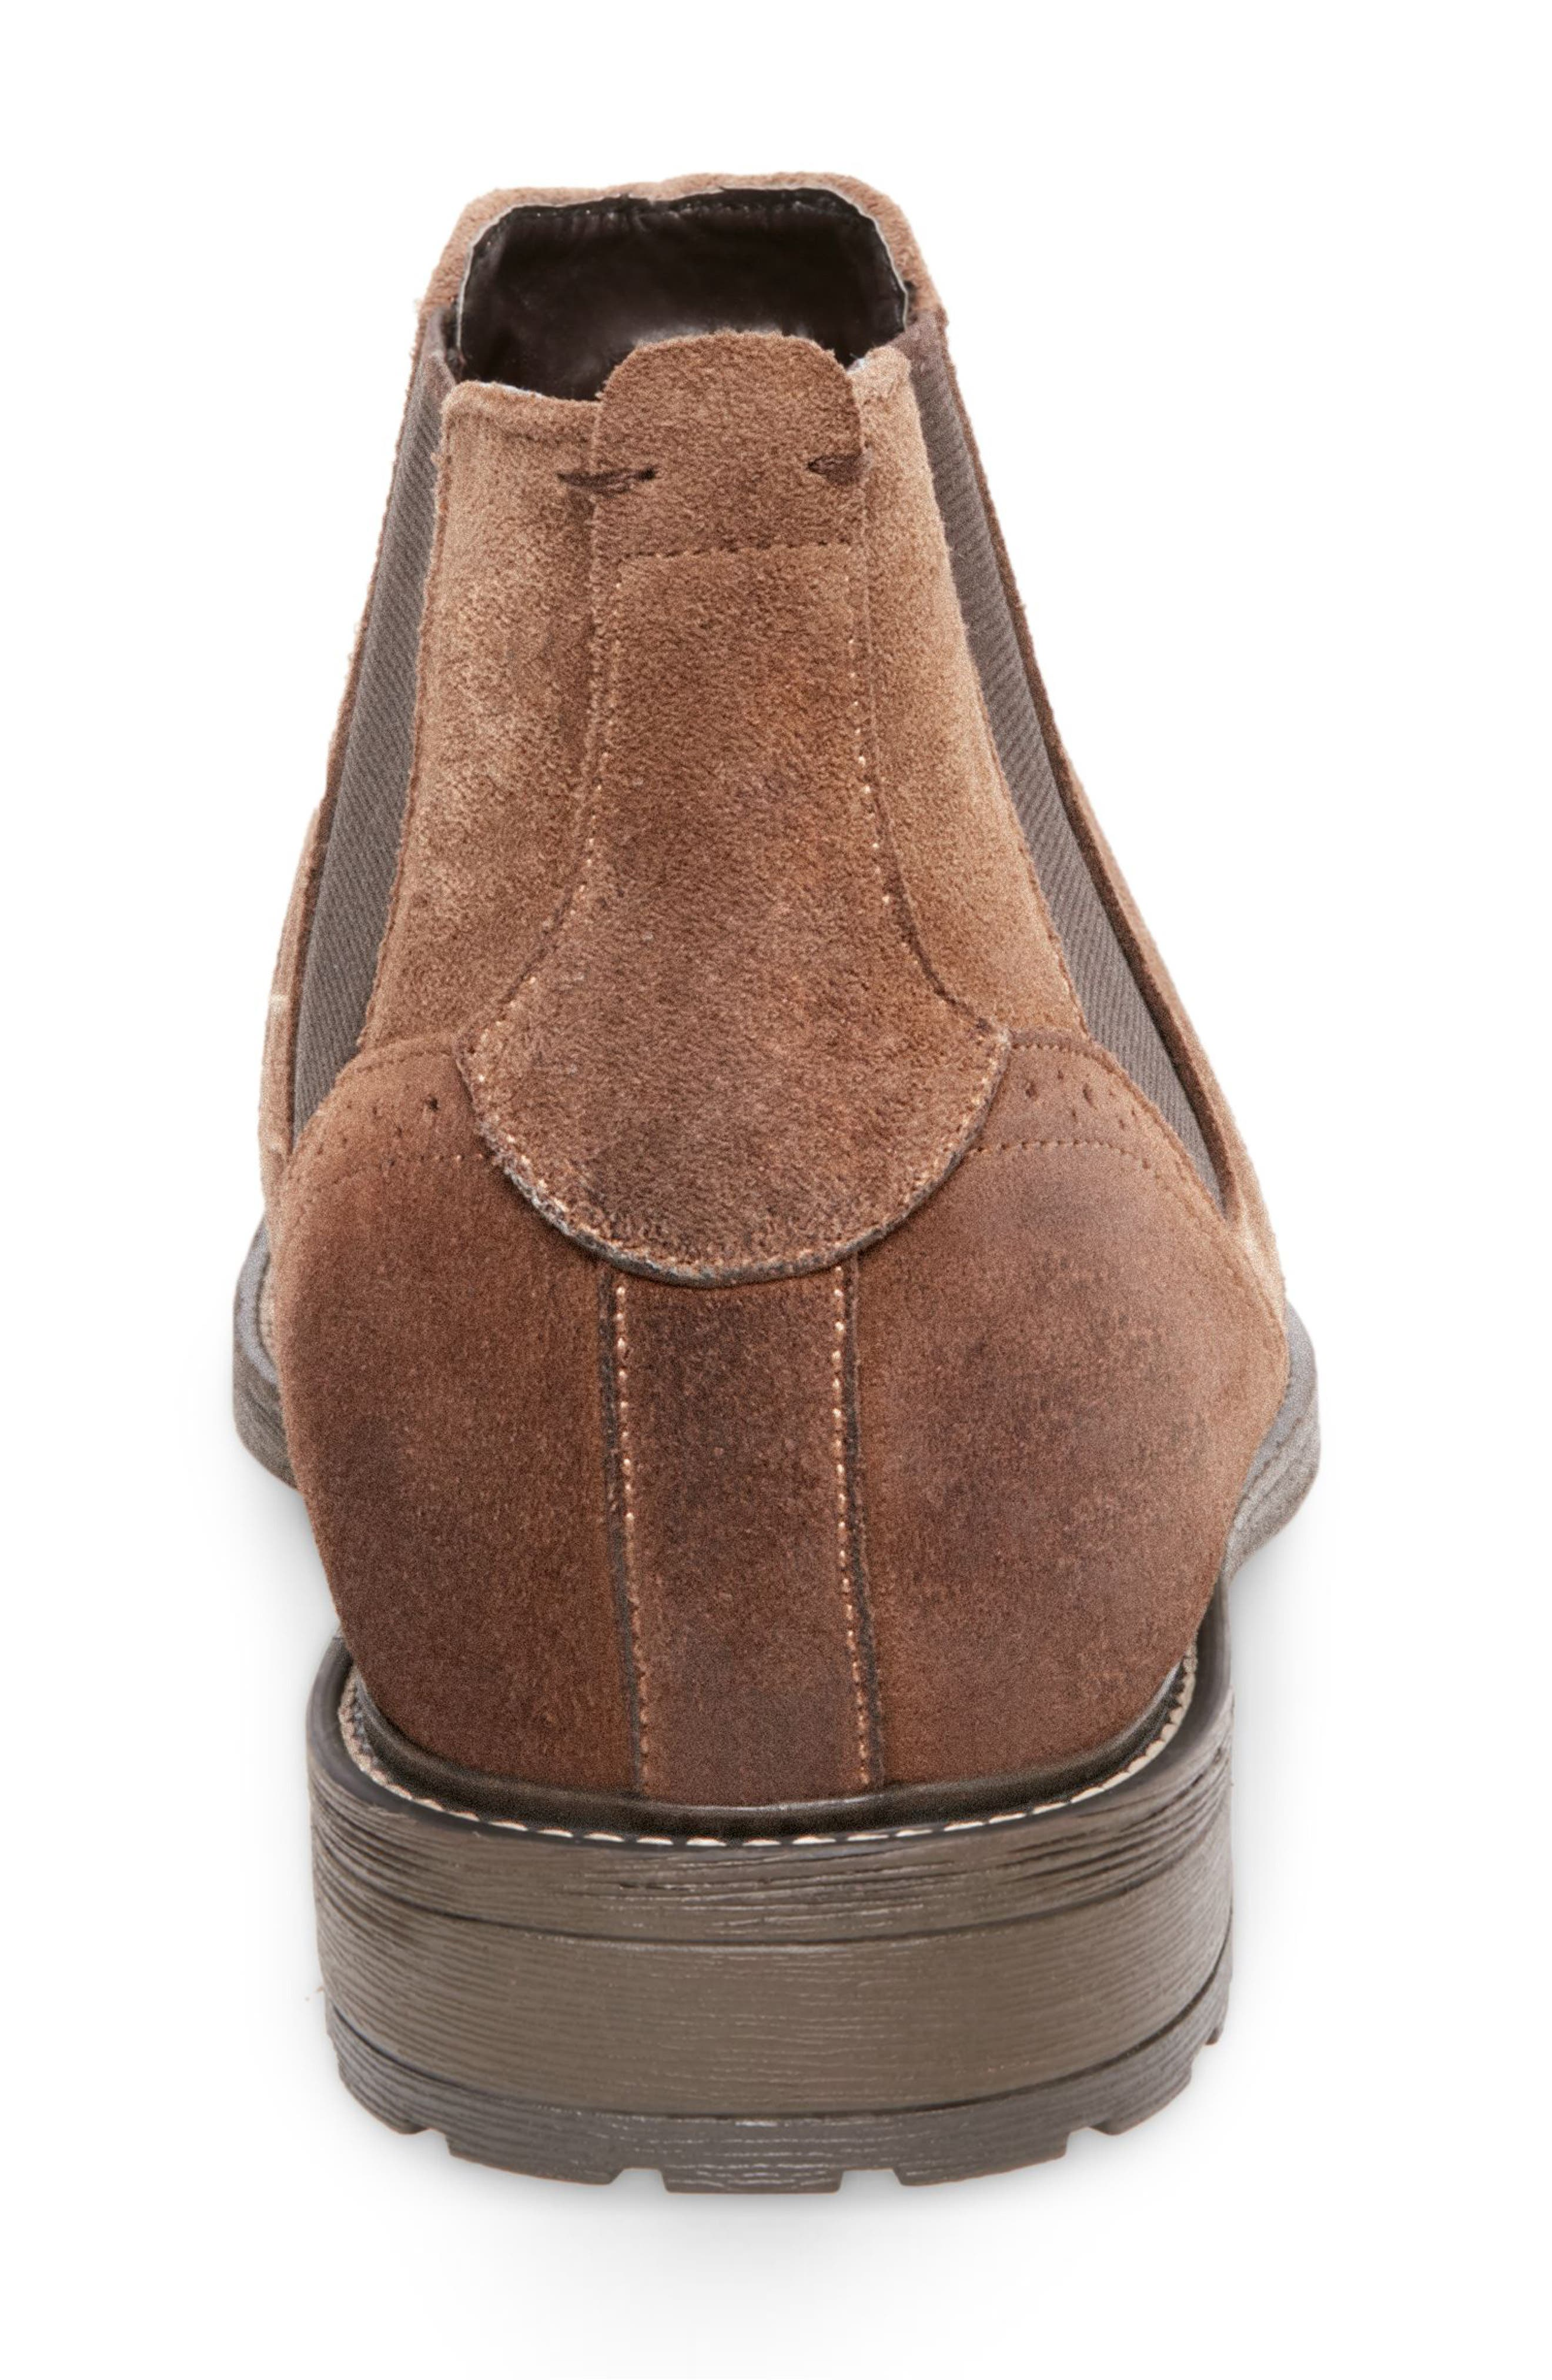 Tampa Chelsea Boot,                             Alternate thumbnail 6, color,                             CAMEL SUEDE